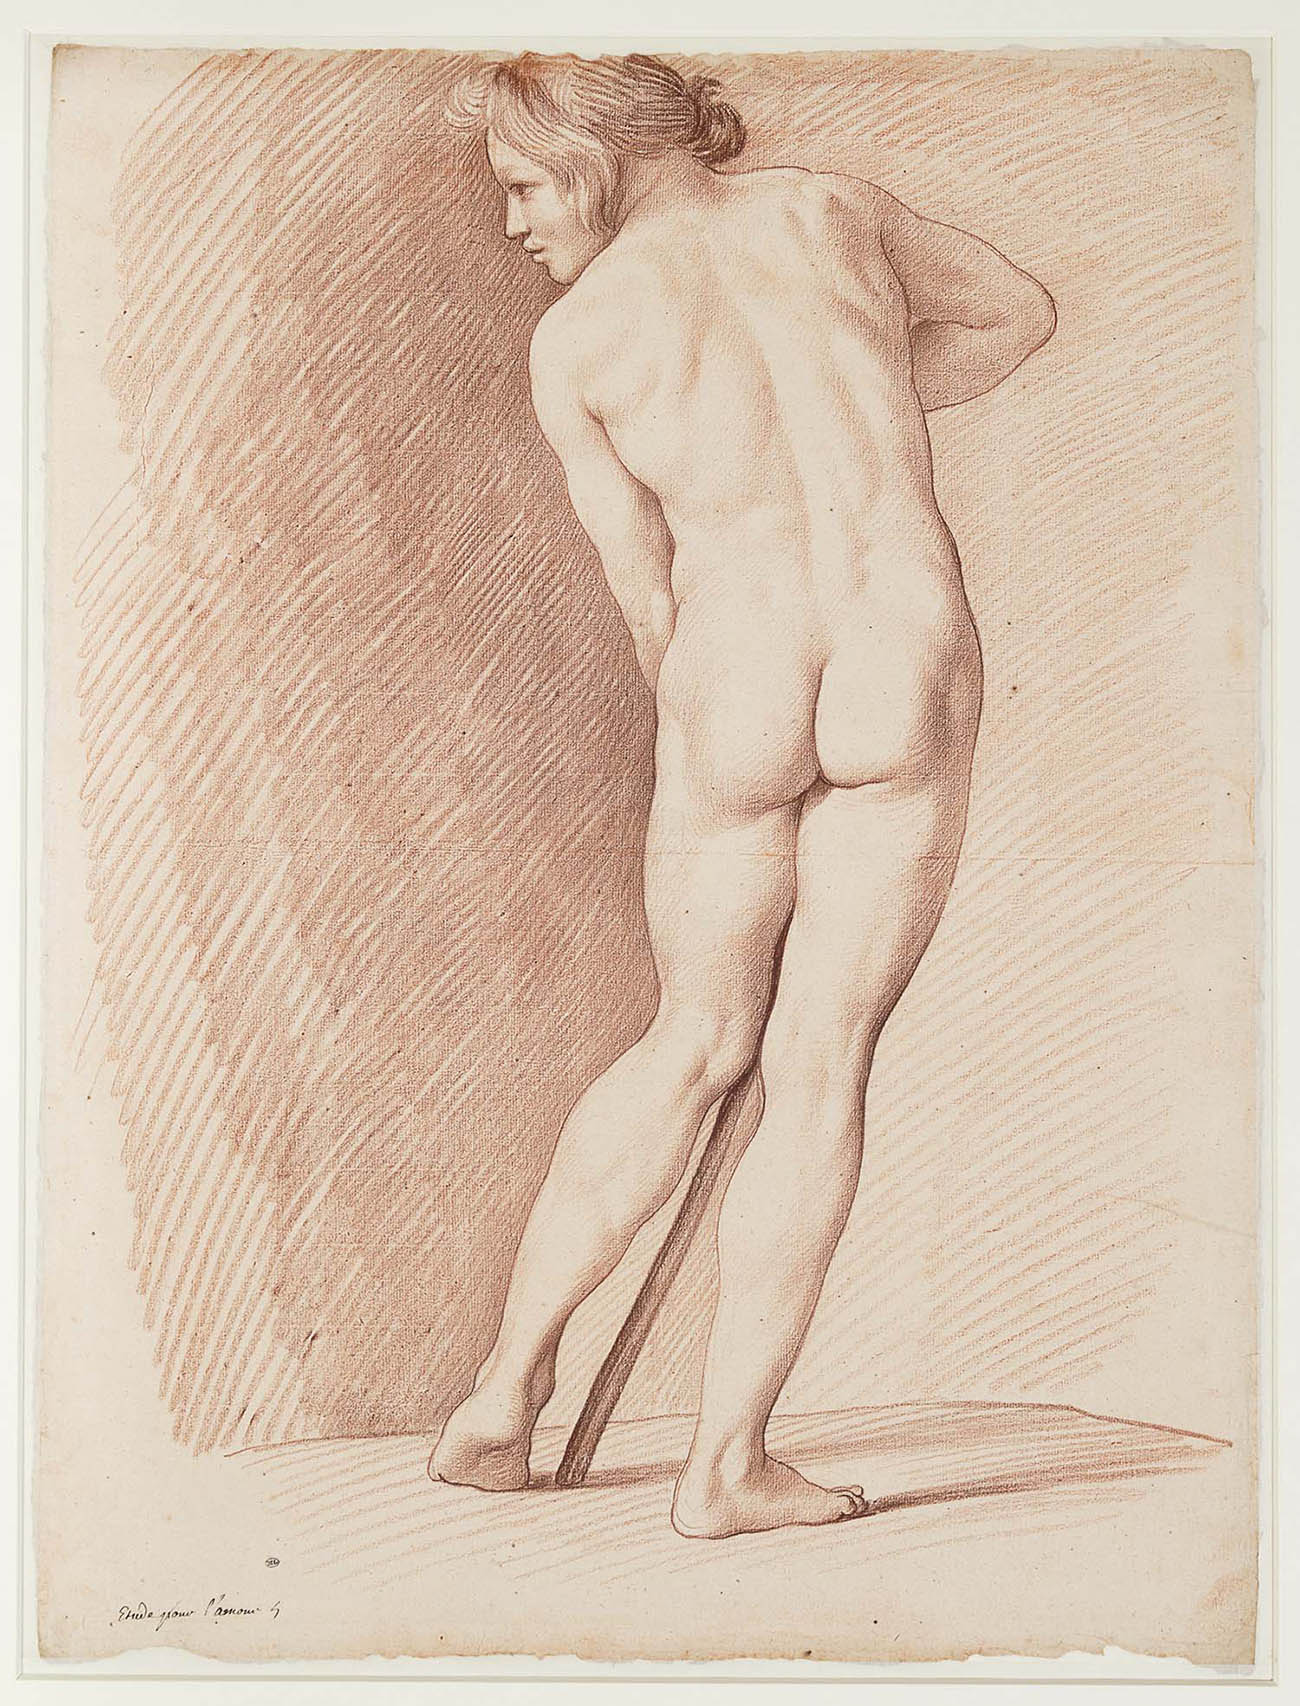 Red chalk drawing of a male nude model, shown from the rear, turning his head to the left